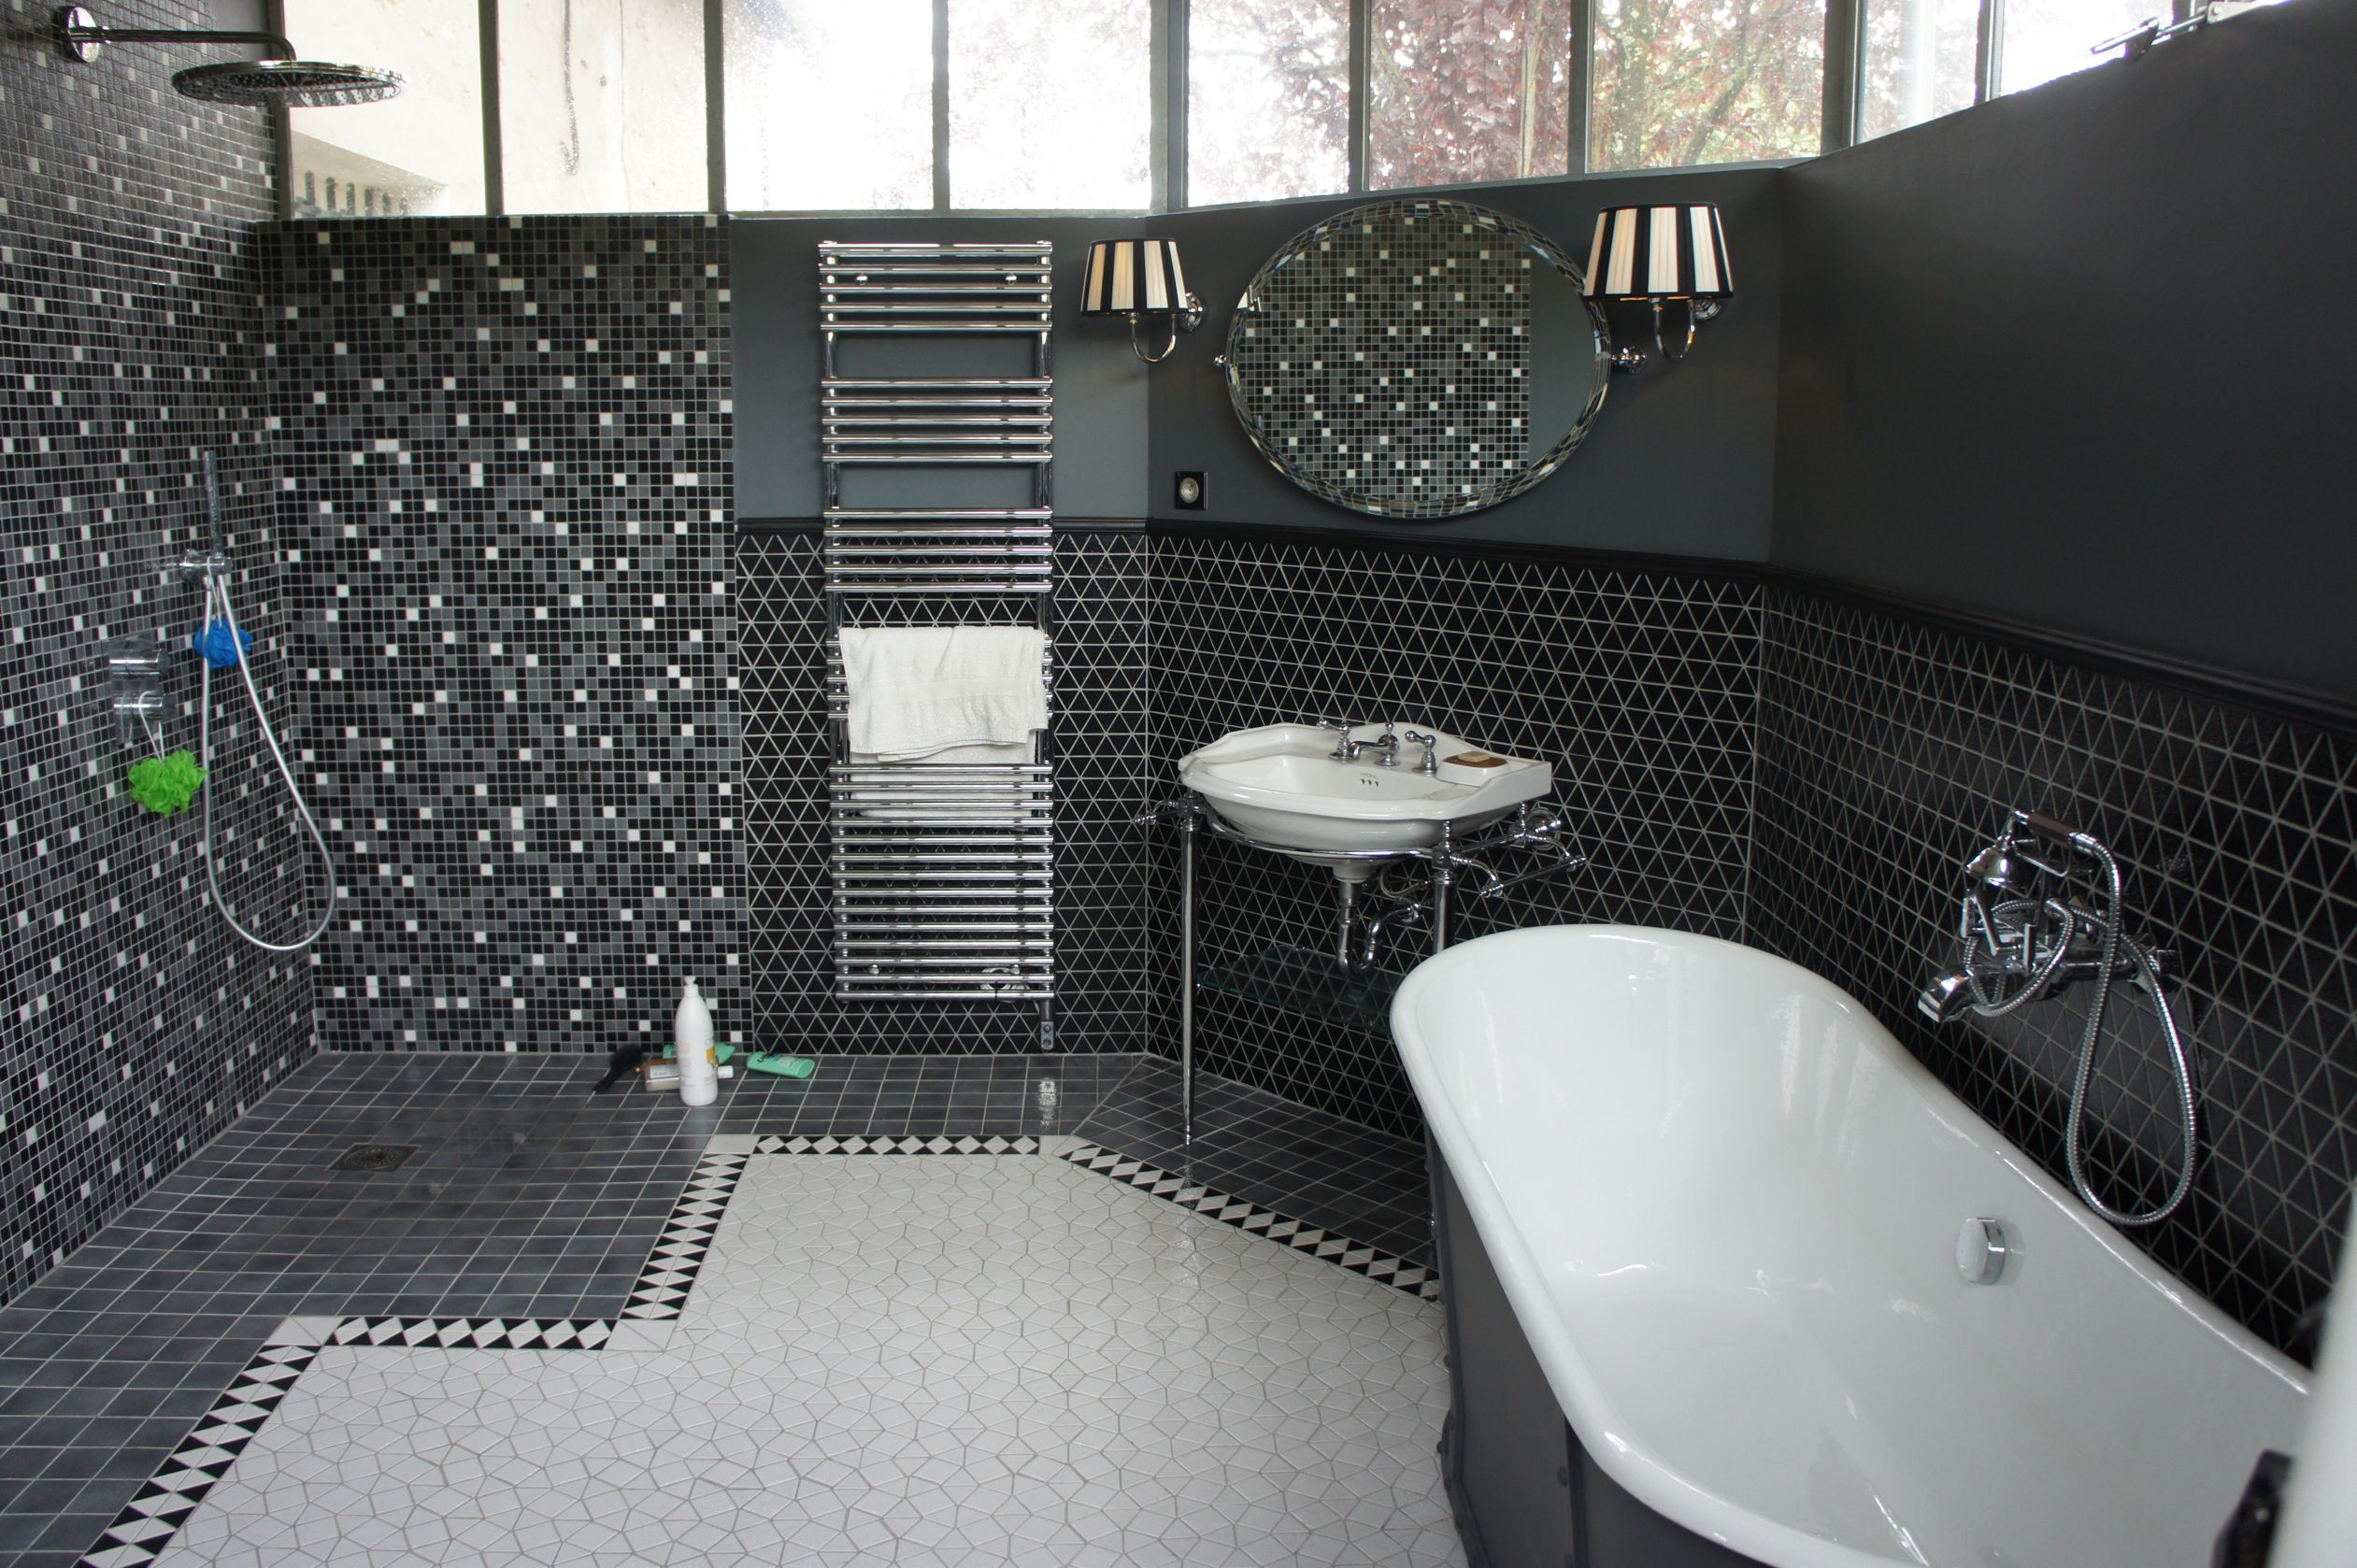 mosaique salle de bain emaux de briare. Black Bedroom Furniture Sets. Home Design Ideas